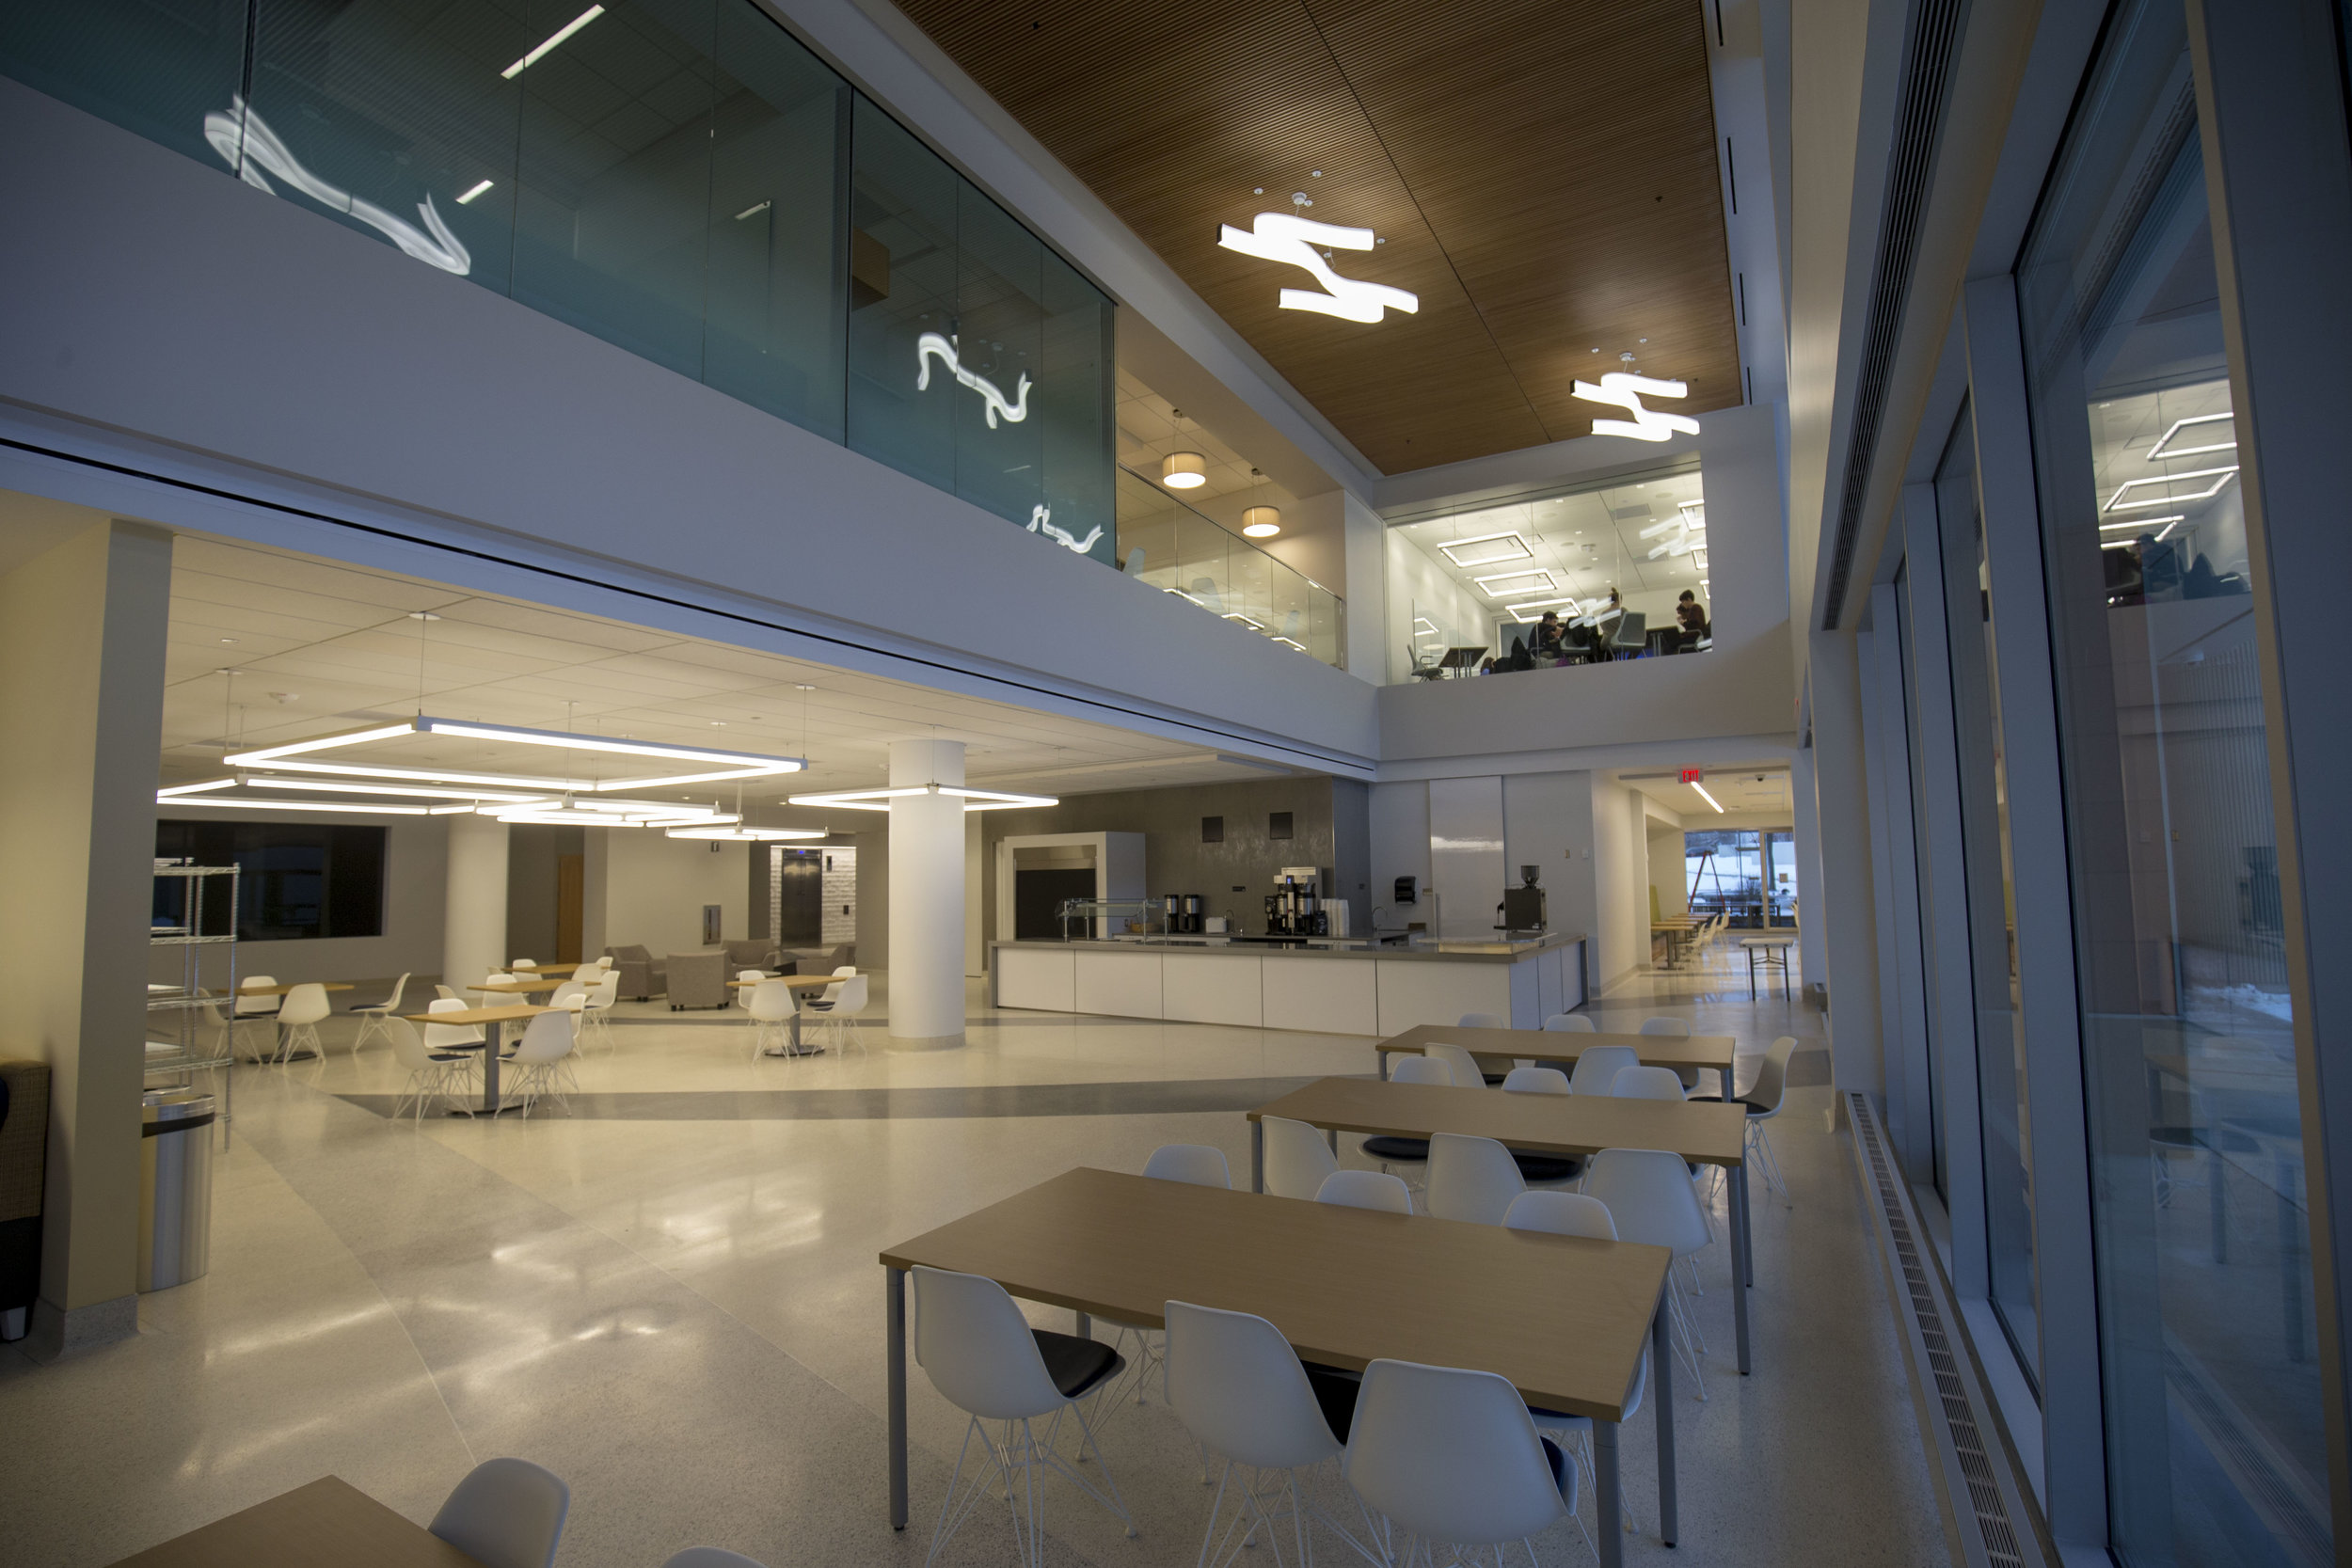 About Hub Central Cafe